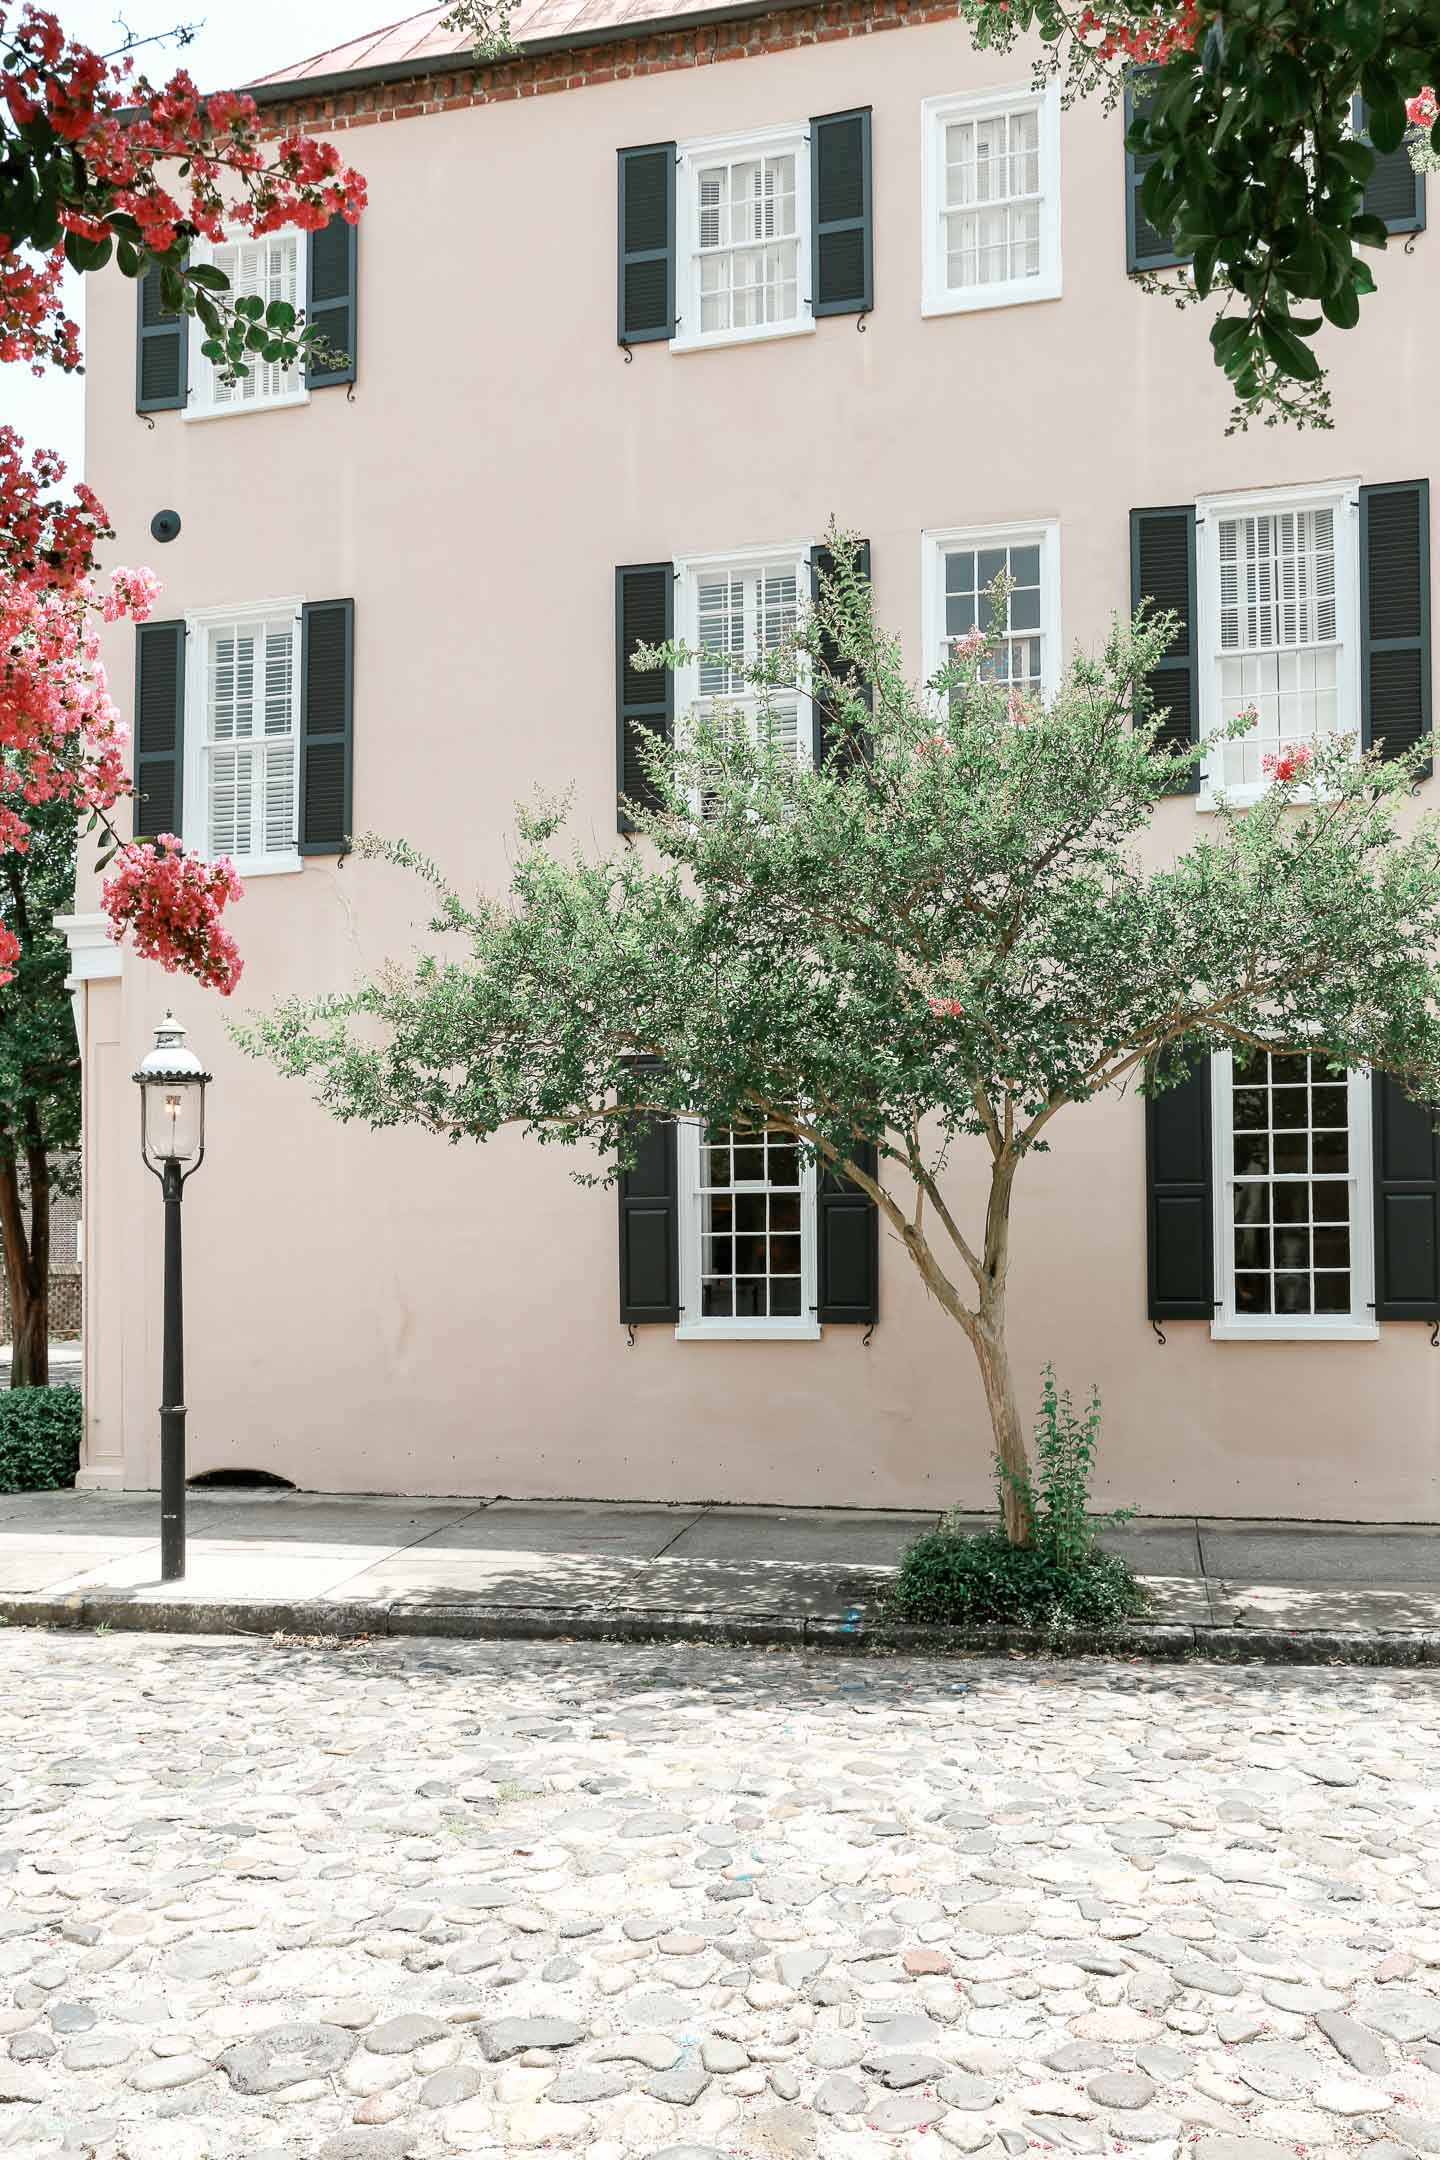 A pale pink building with black shutters located on a cobblestone street in Charleston.